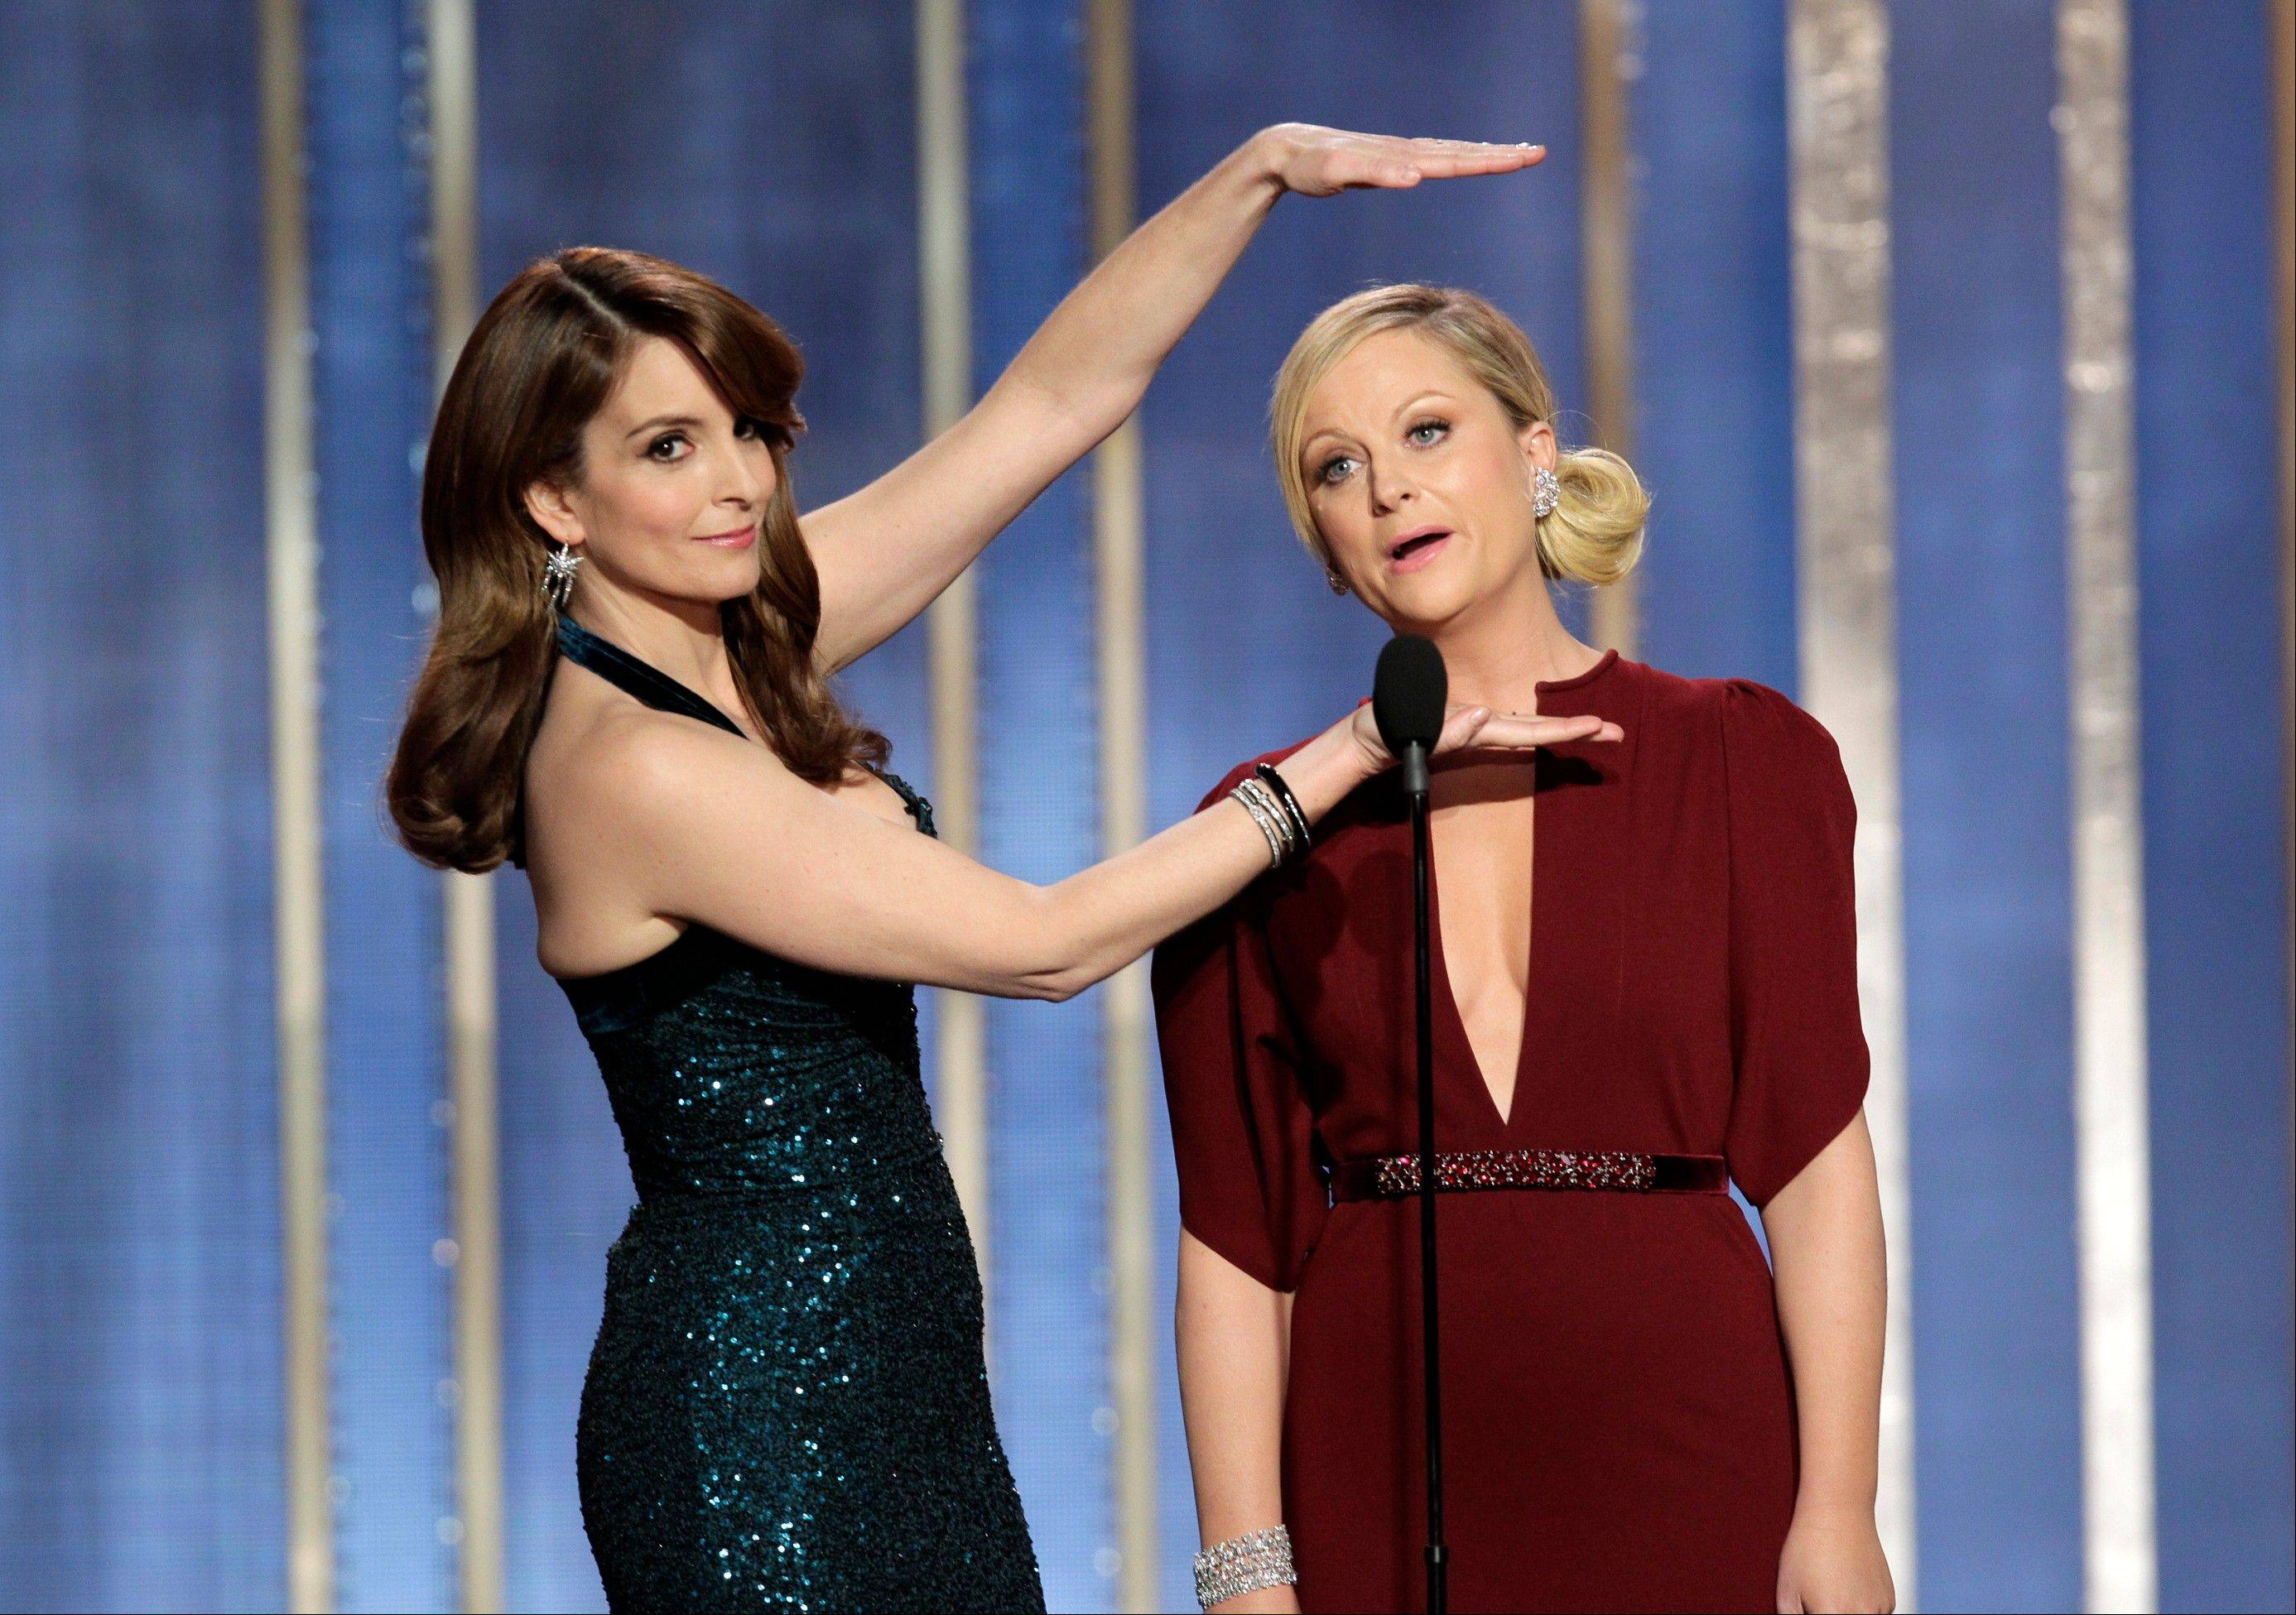 The Hollywood Foreign Press Association said Tuesday that Tina Fey and Amy Poehler have signed up to host the Golden Globes for two more years.